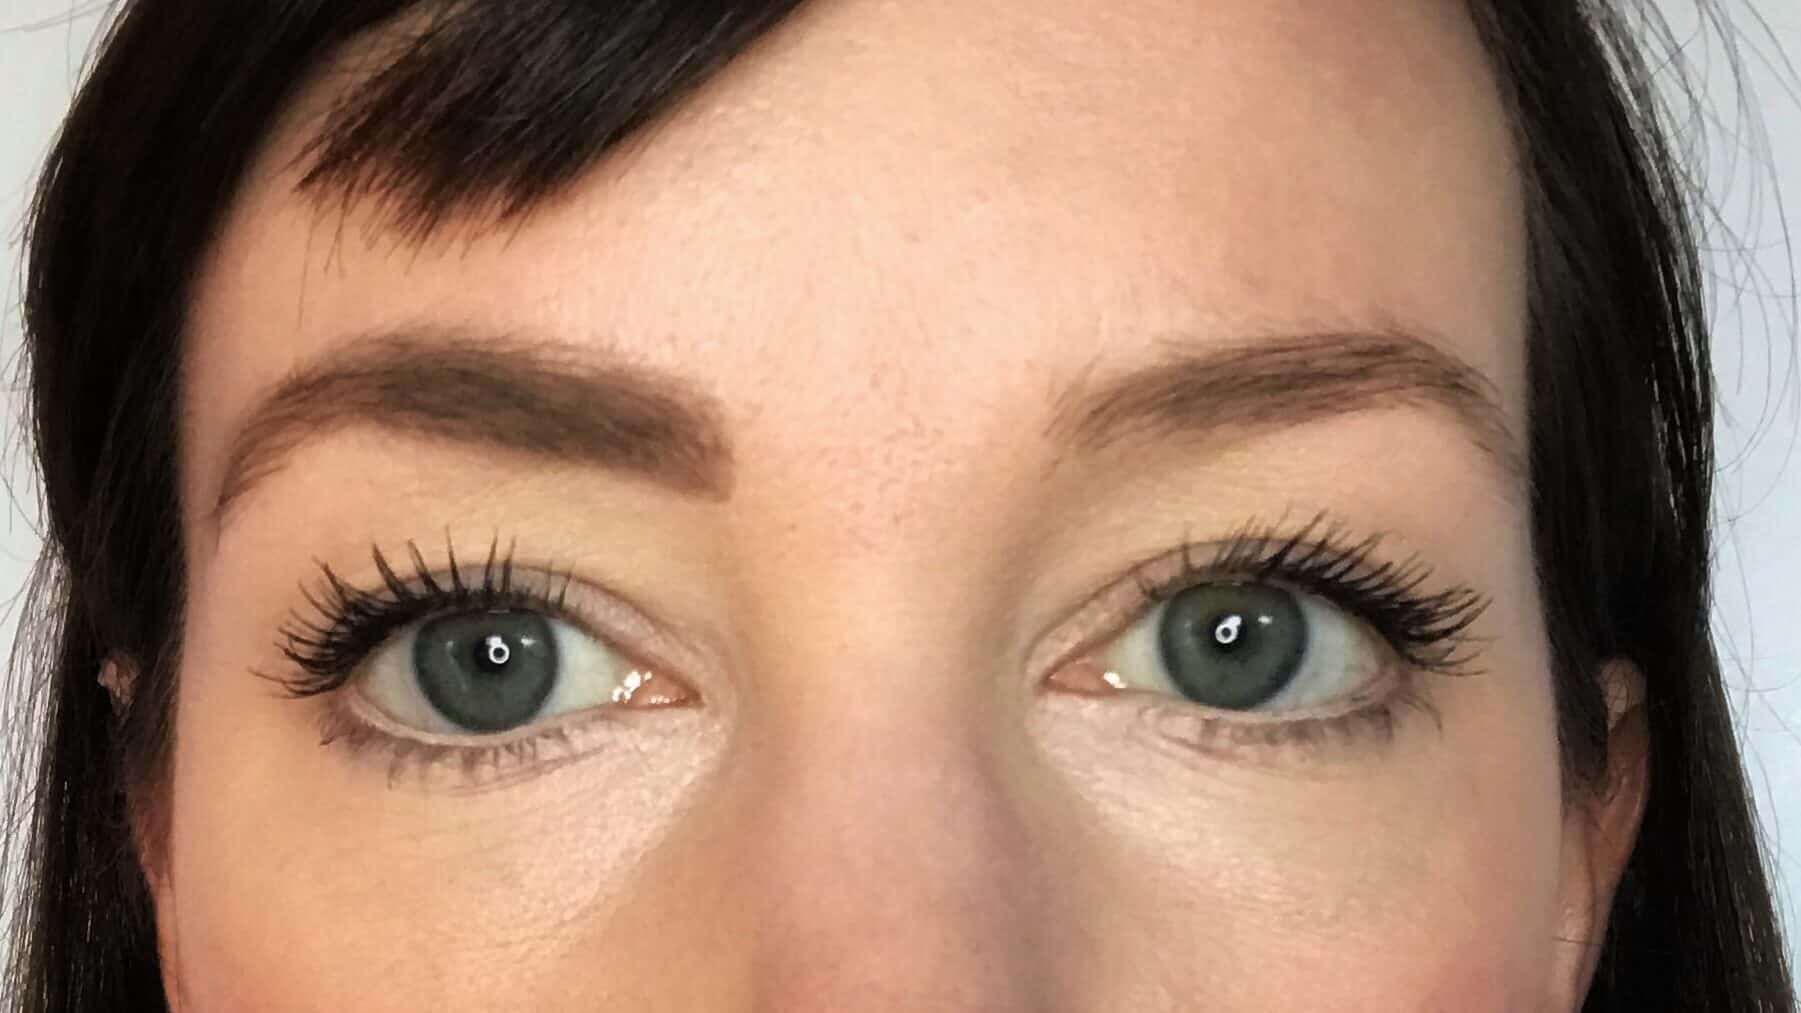 One eyebrow with natural eyebrow pencil and eyebrow gel to make them look fuller